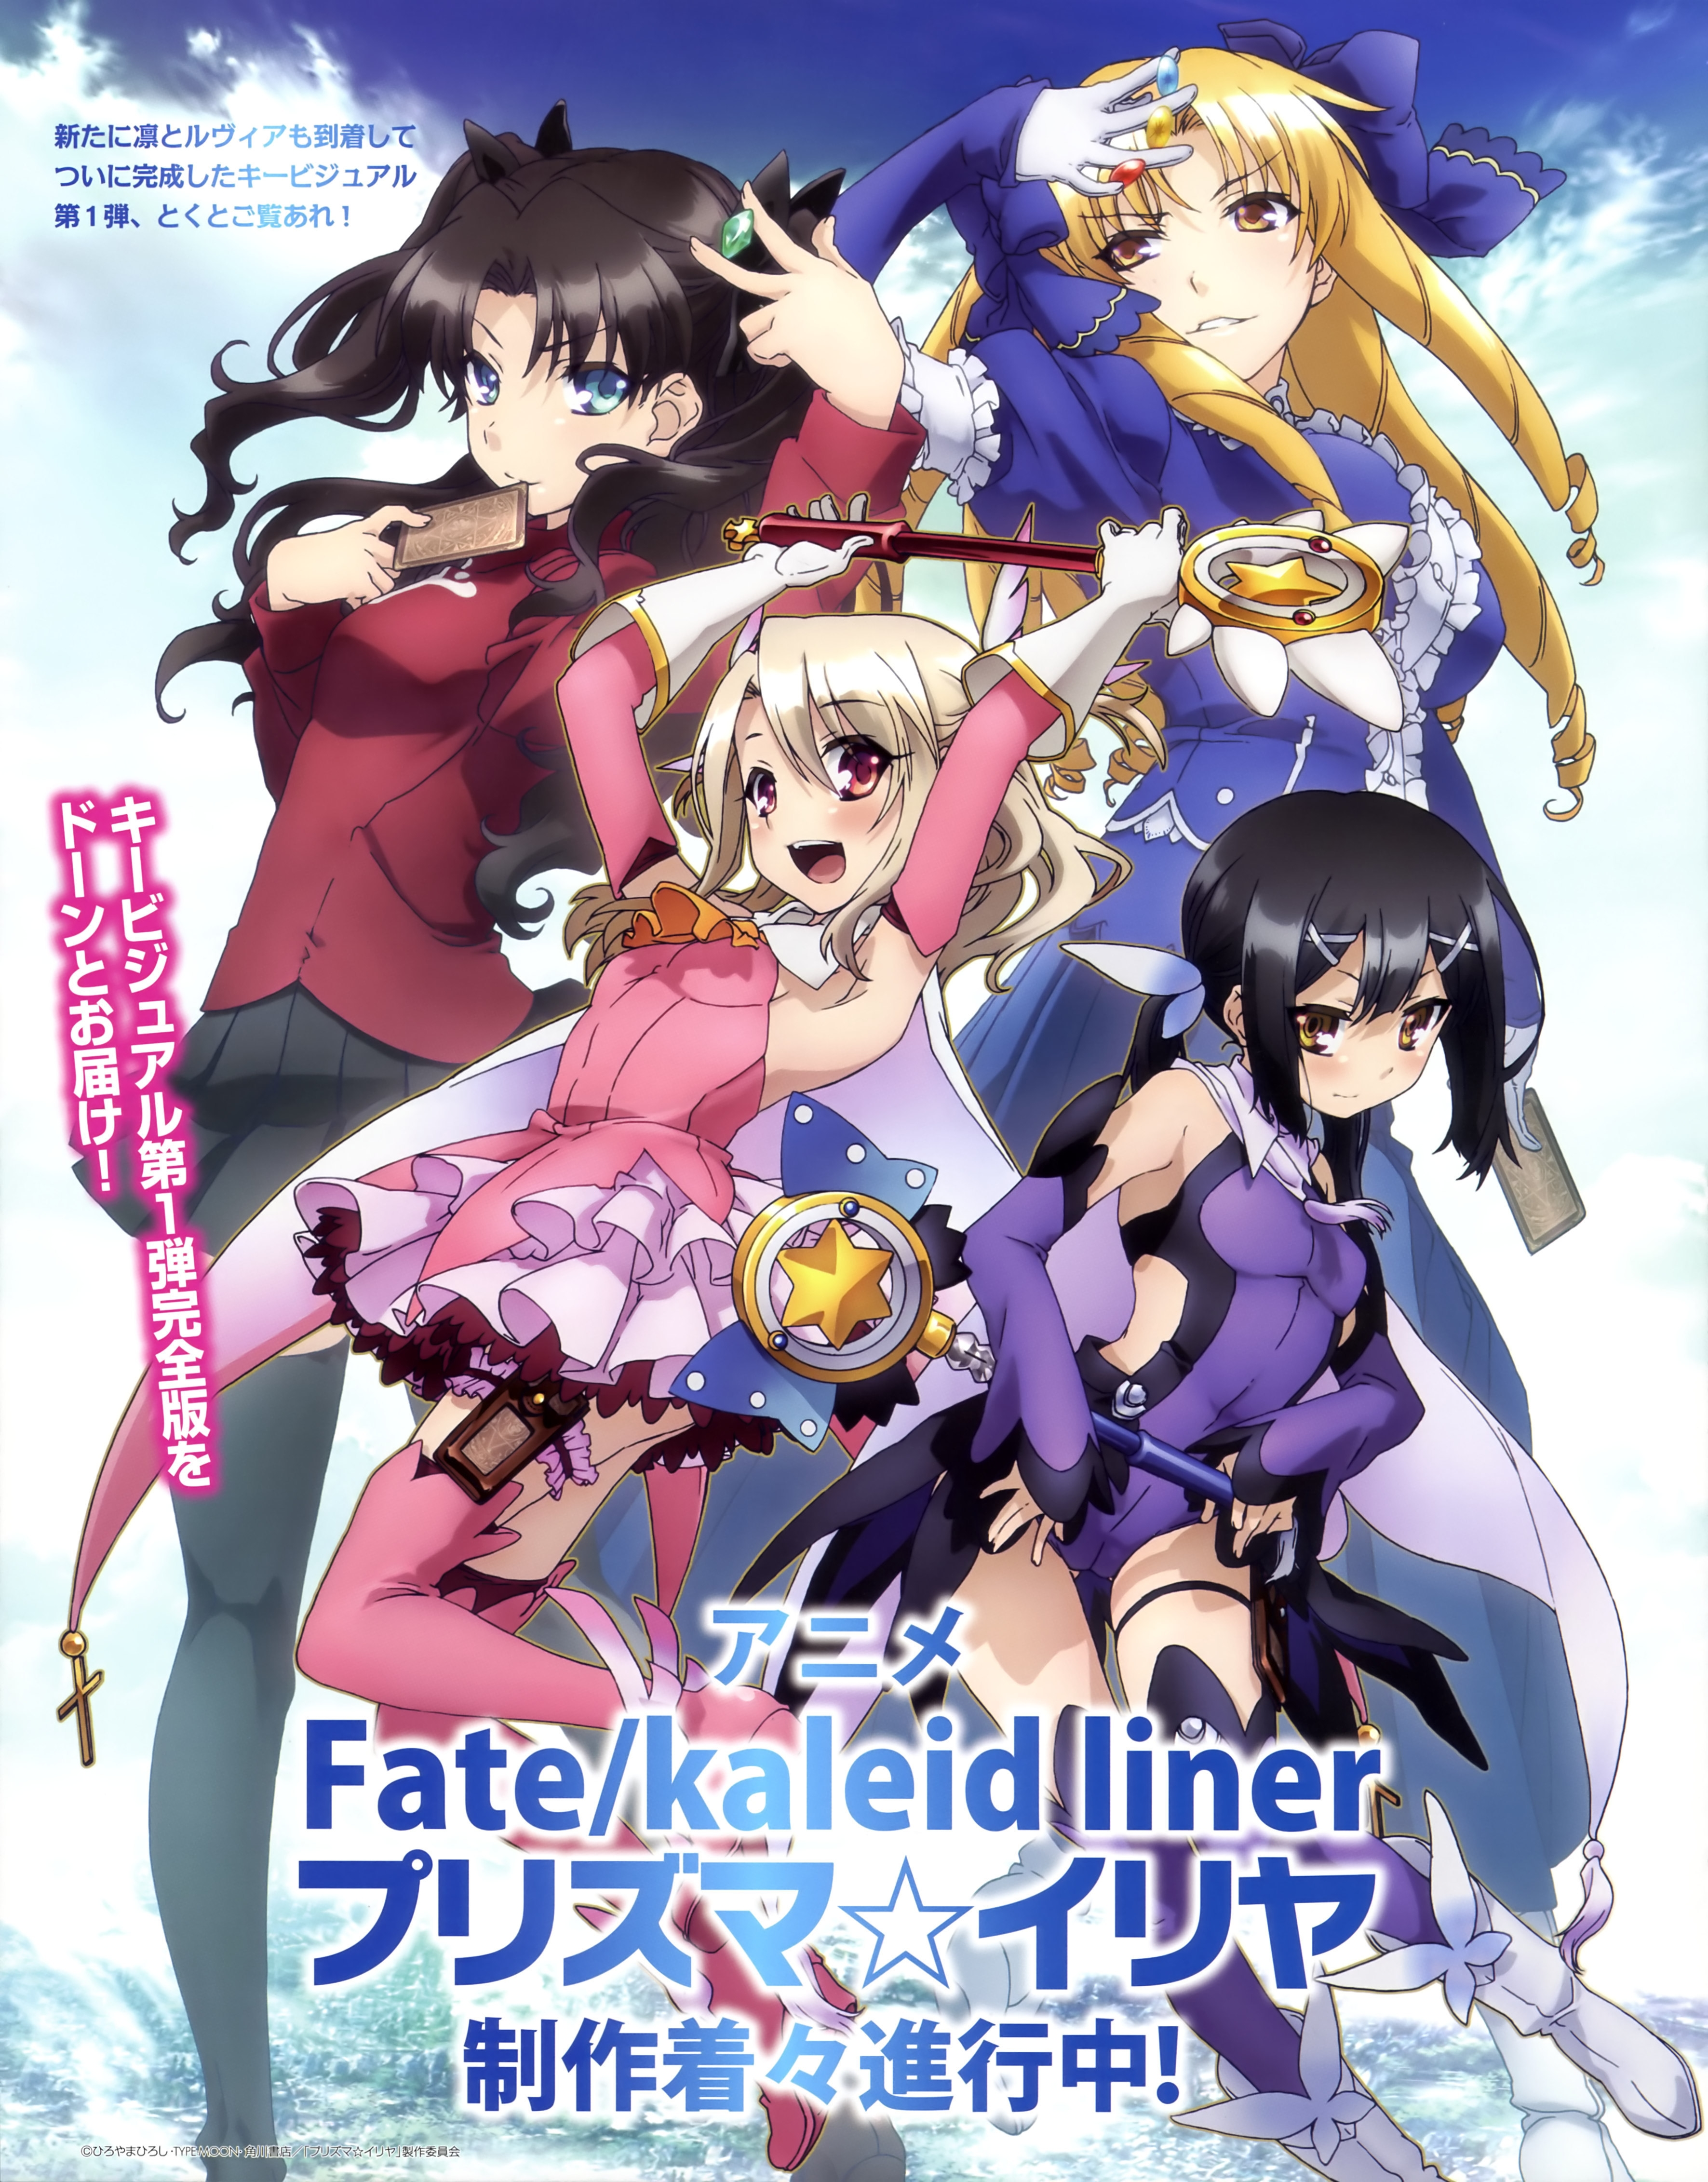 Fate Kaleid Liner Prisma Illya Wallpaper Posted By Ryan Tremblay